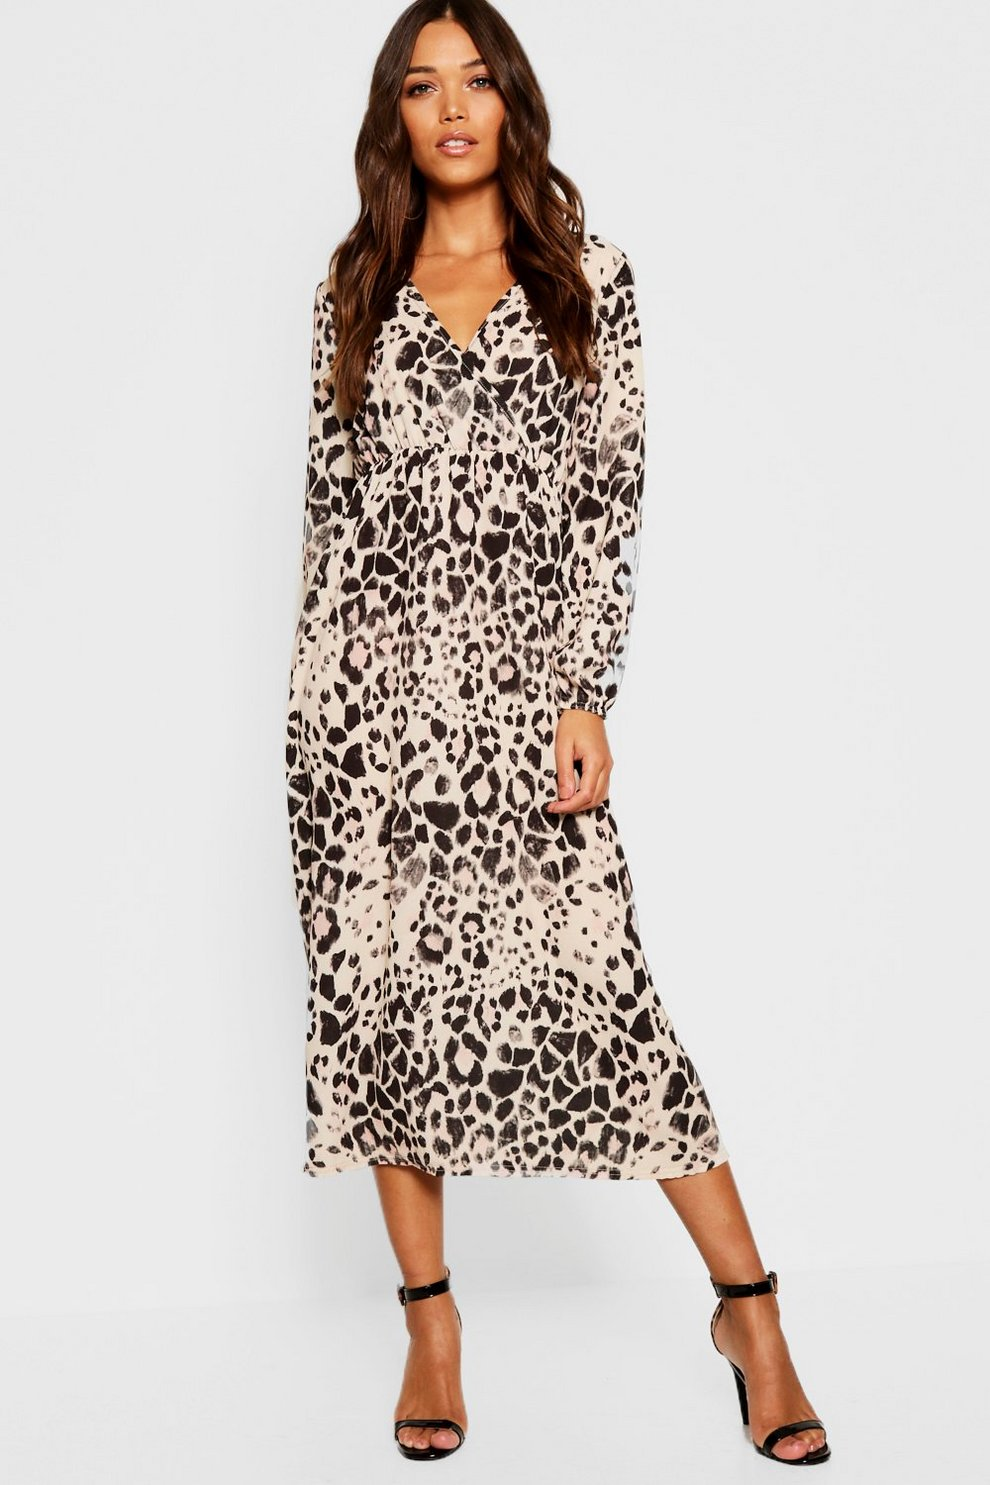 357a050d4022 Leopard Print Long Sleeved Bodycon Midi Dress | Boohoo